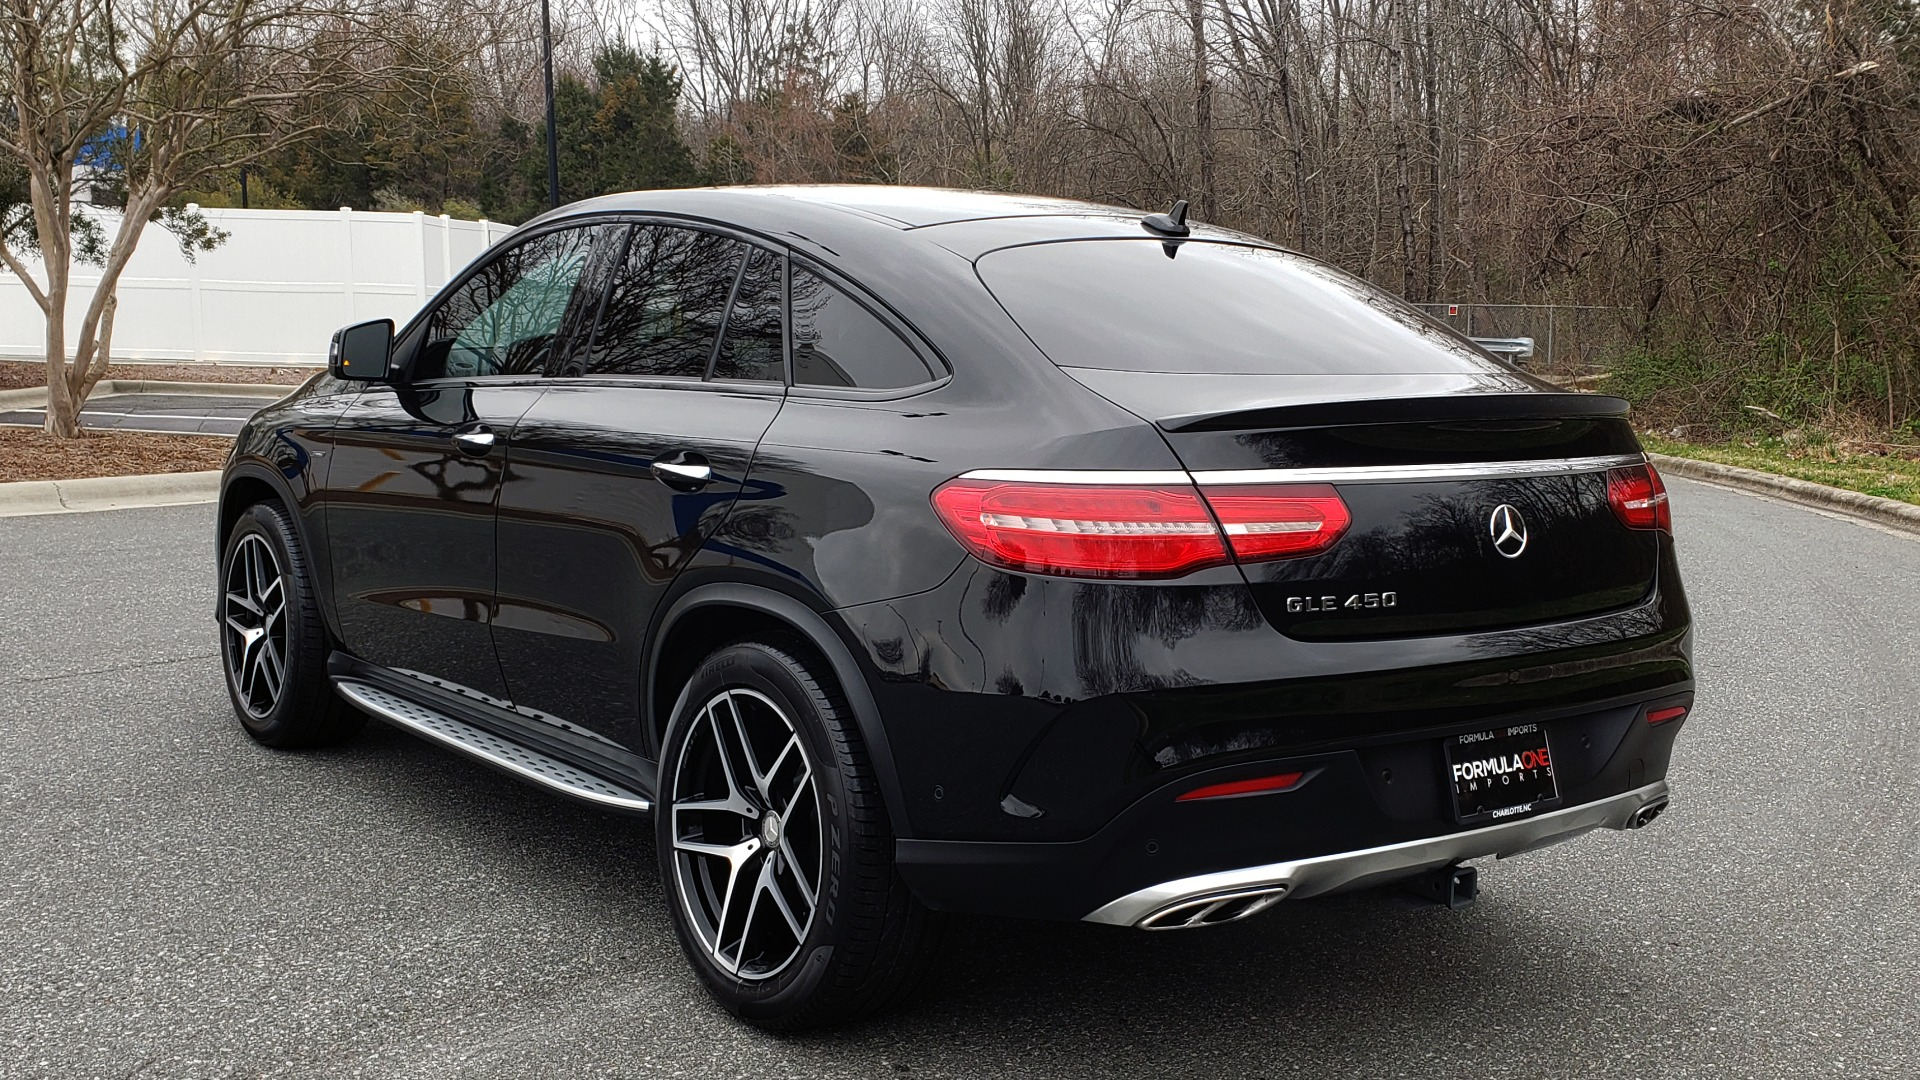 Used 2016 Mercedes-Benz GLE 450 AMG / AWD / PREM PKG / PARK ASST / DRVR ASST / SUNROOF for sale Sold at Formula Imports in Charlotte NC 28227 4